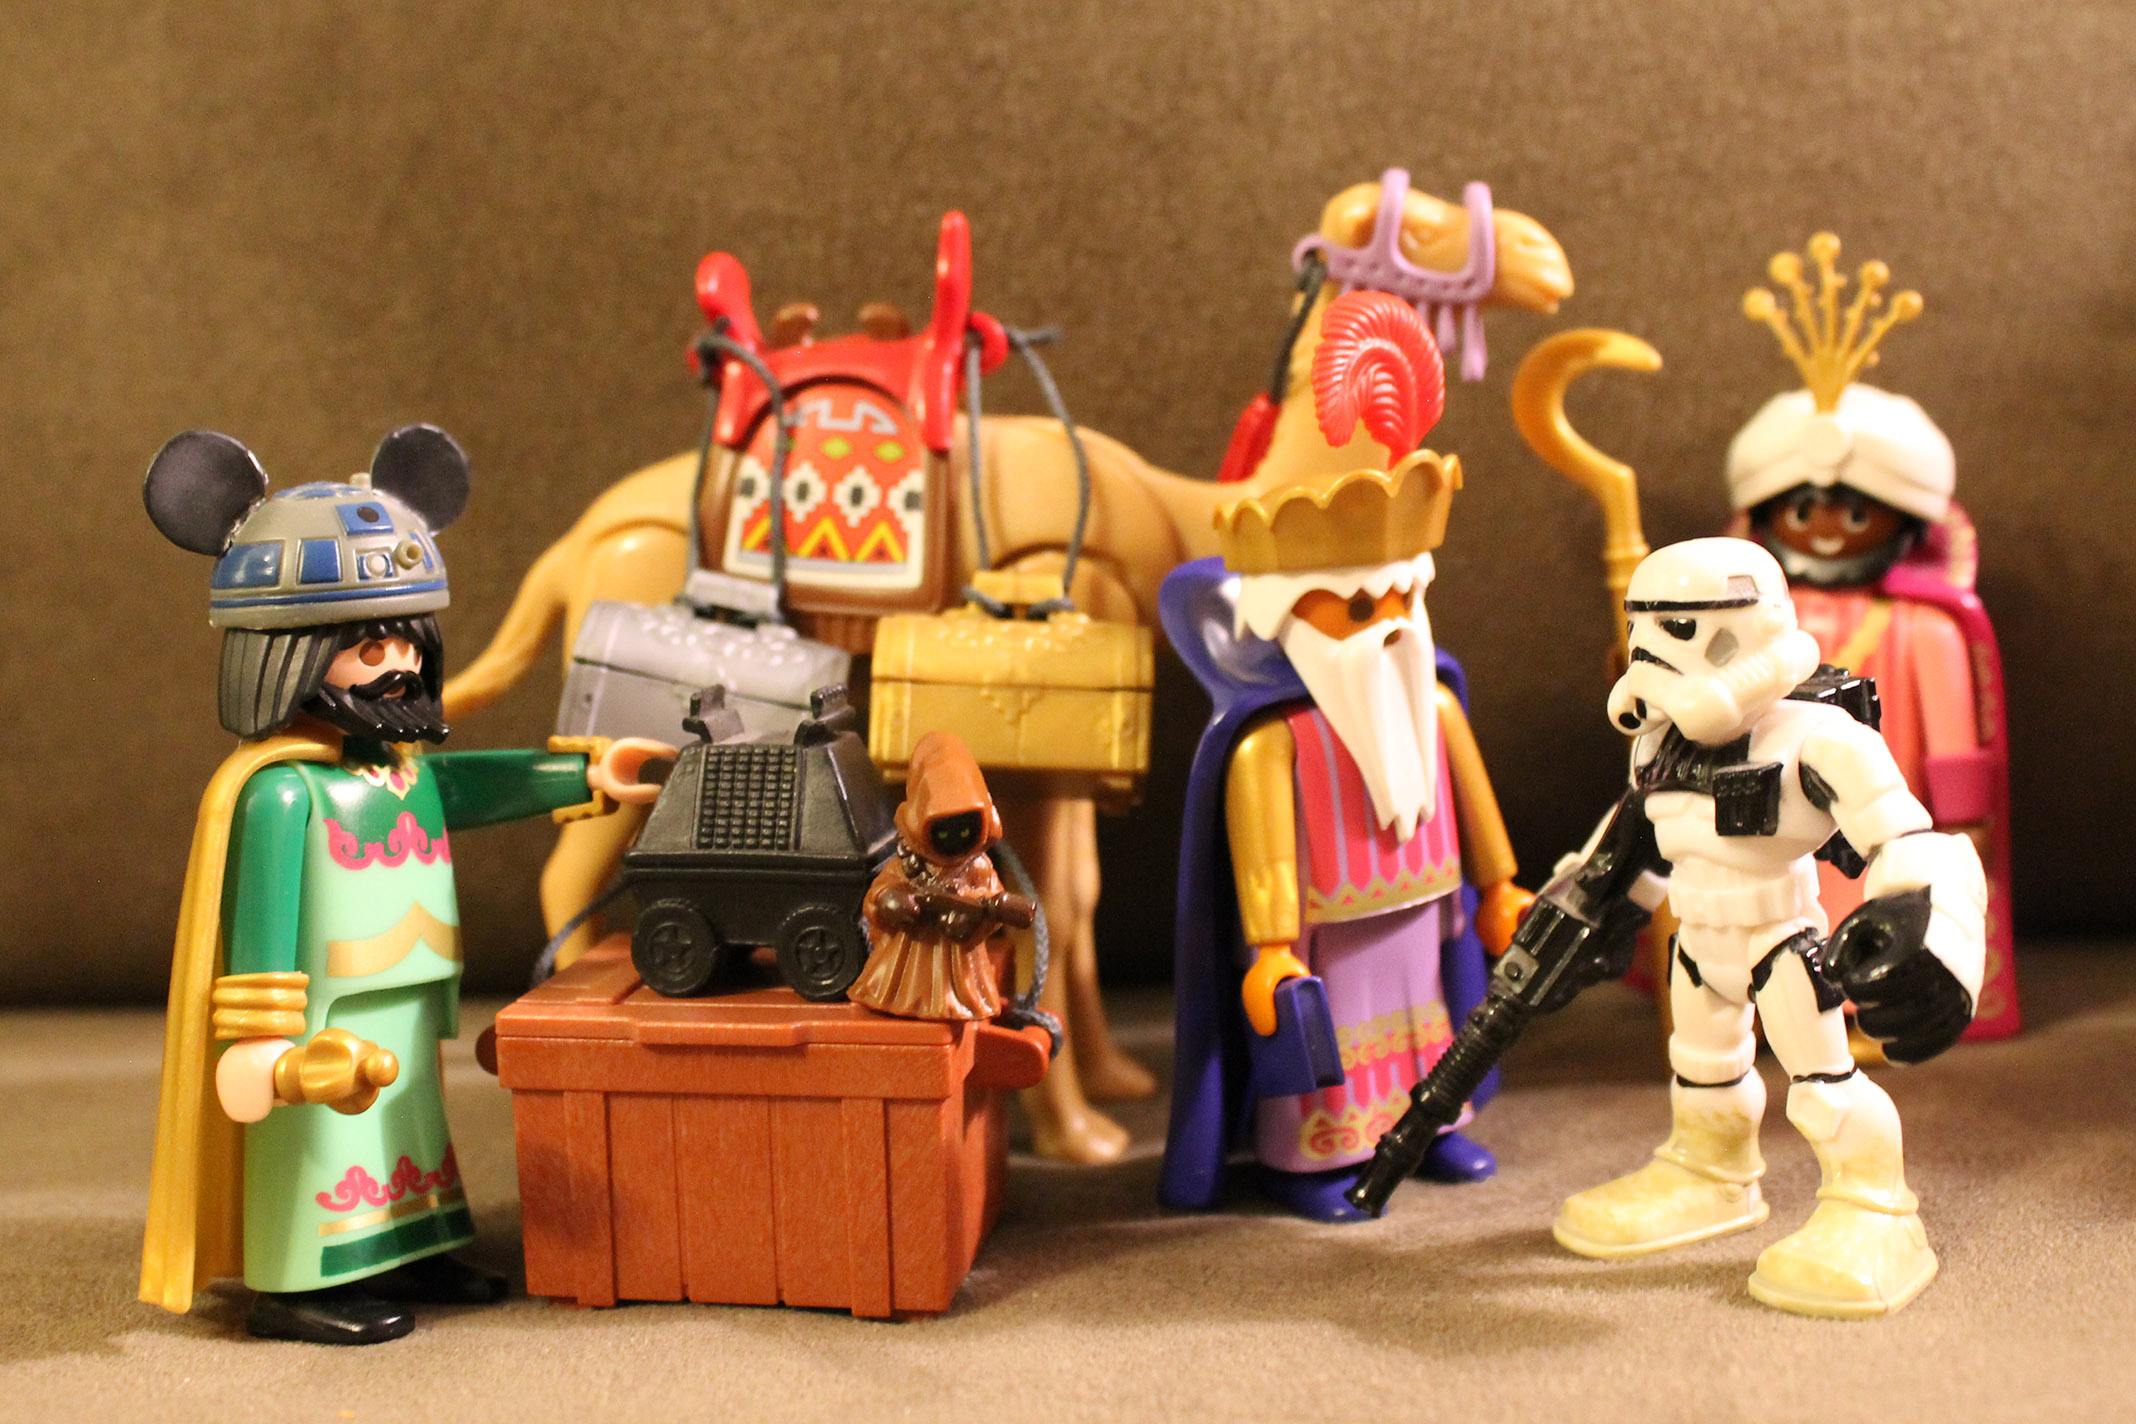 Three wisemen and a Sandtrooper with a Jawa.